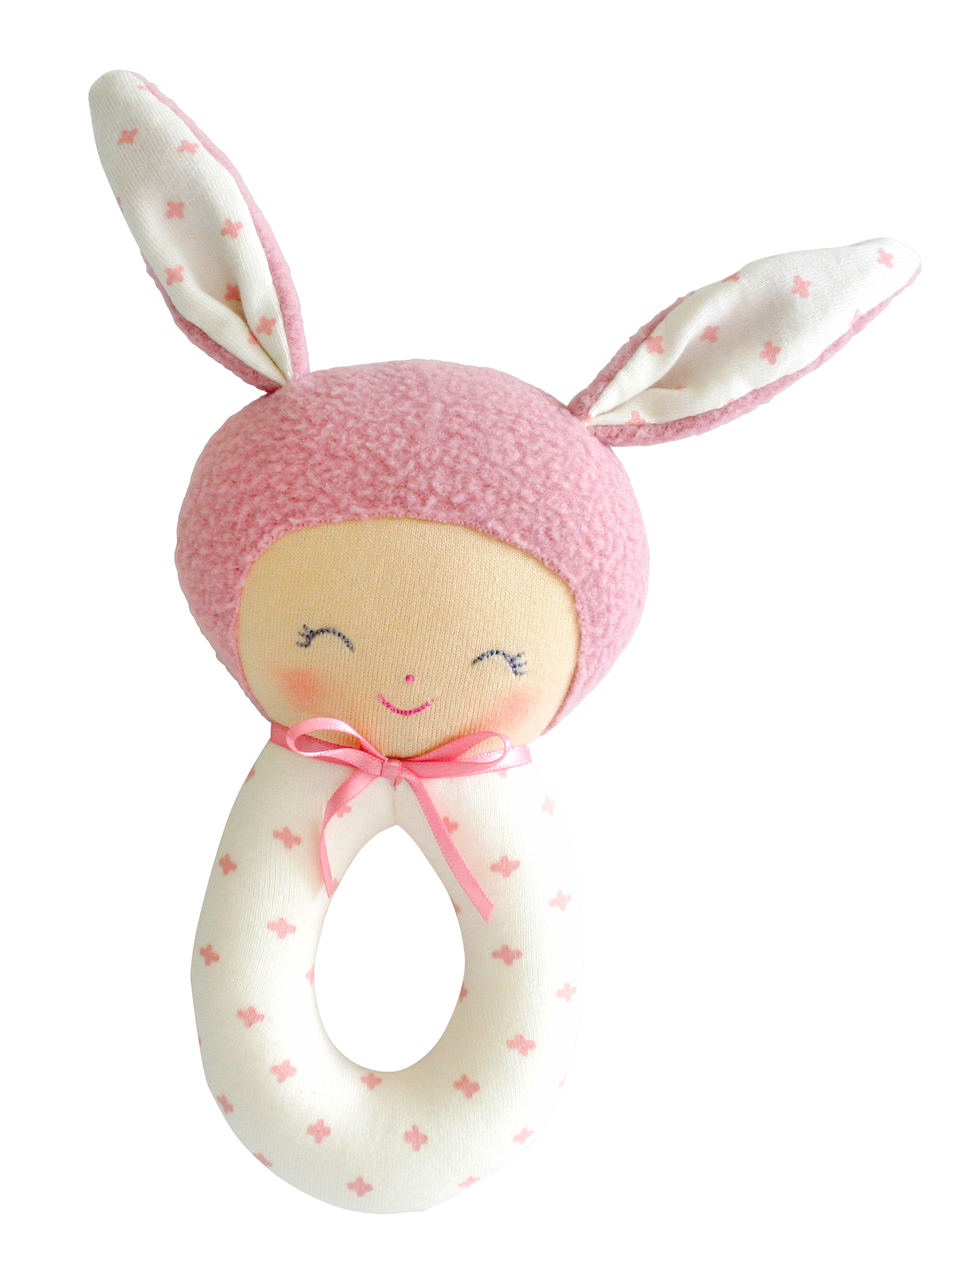 Charlie grab rattle in Pink 18cm By Alimrose